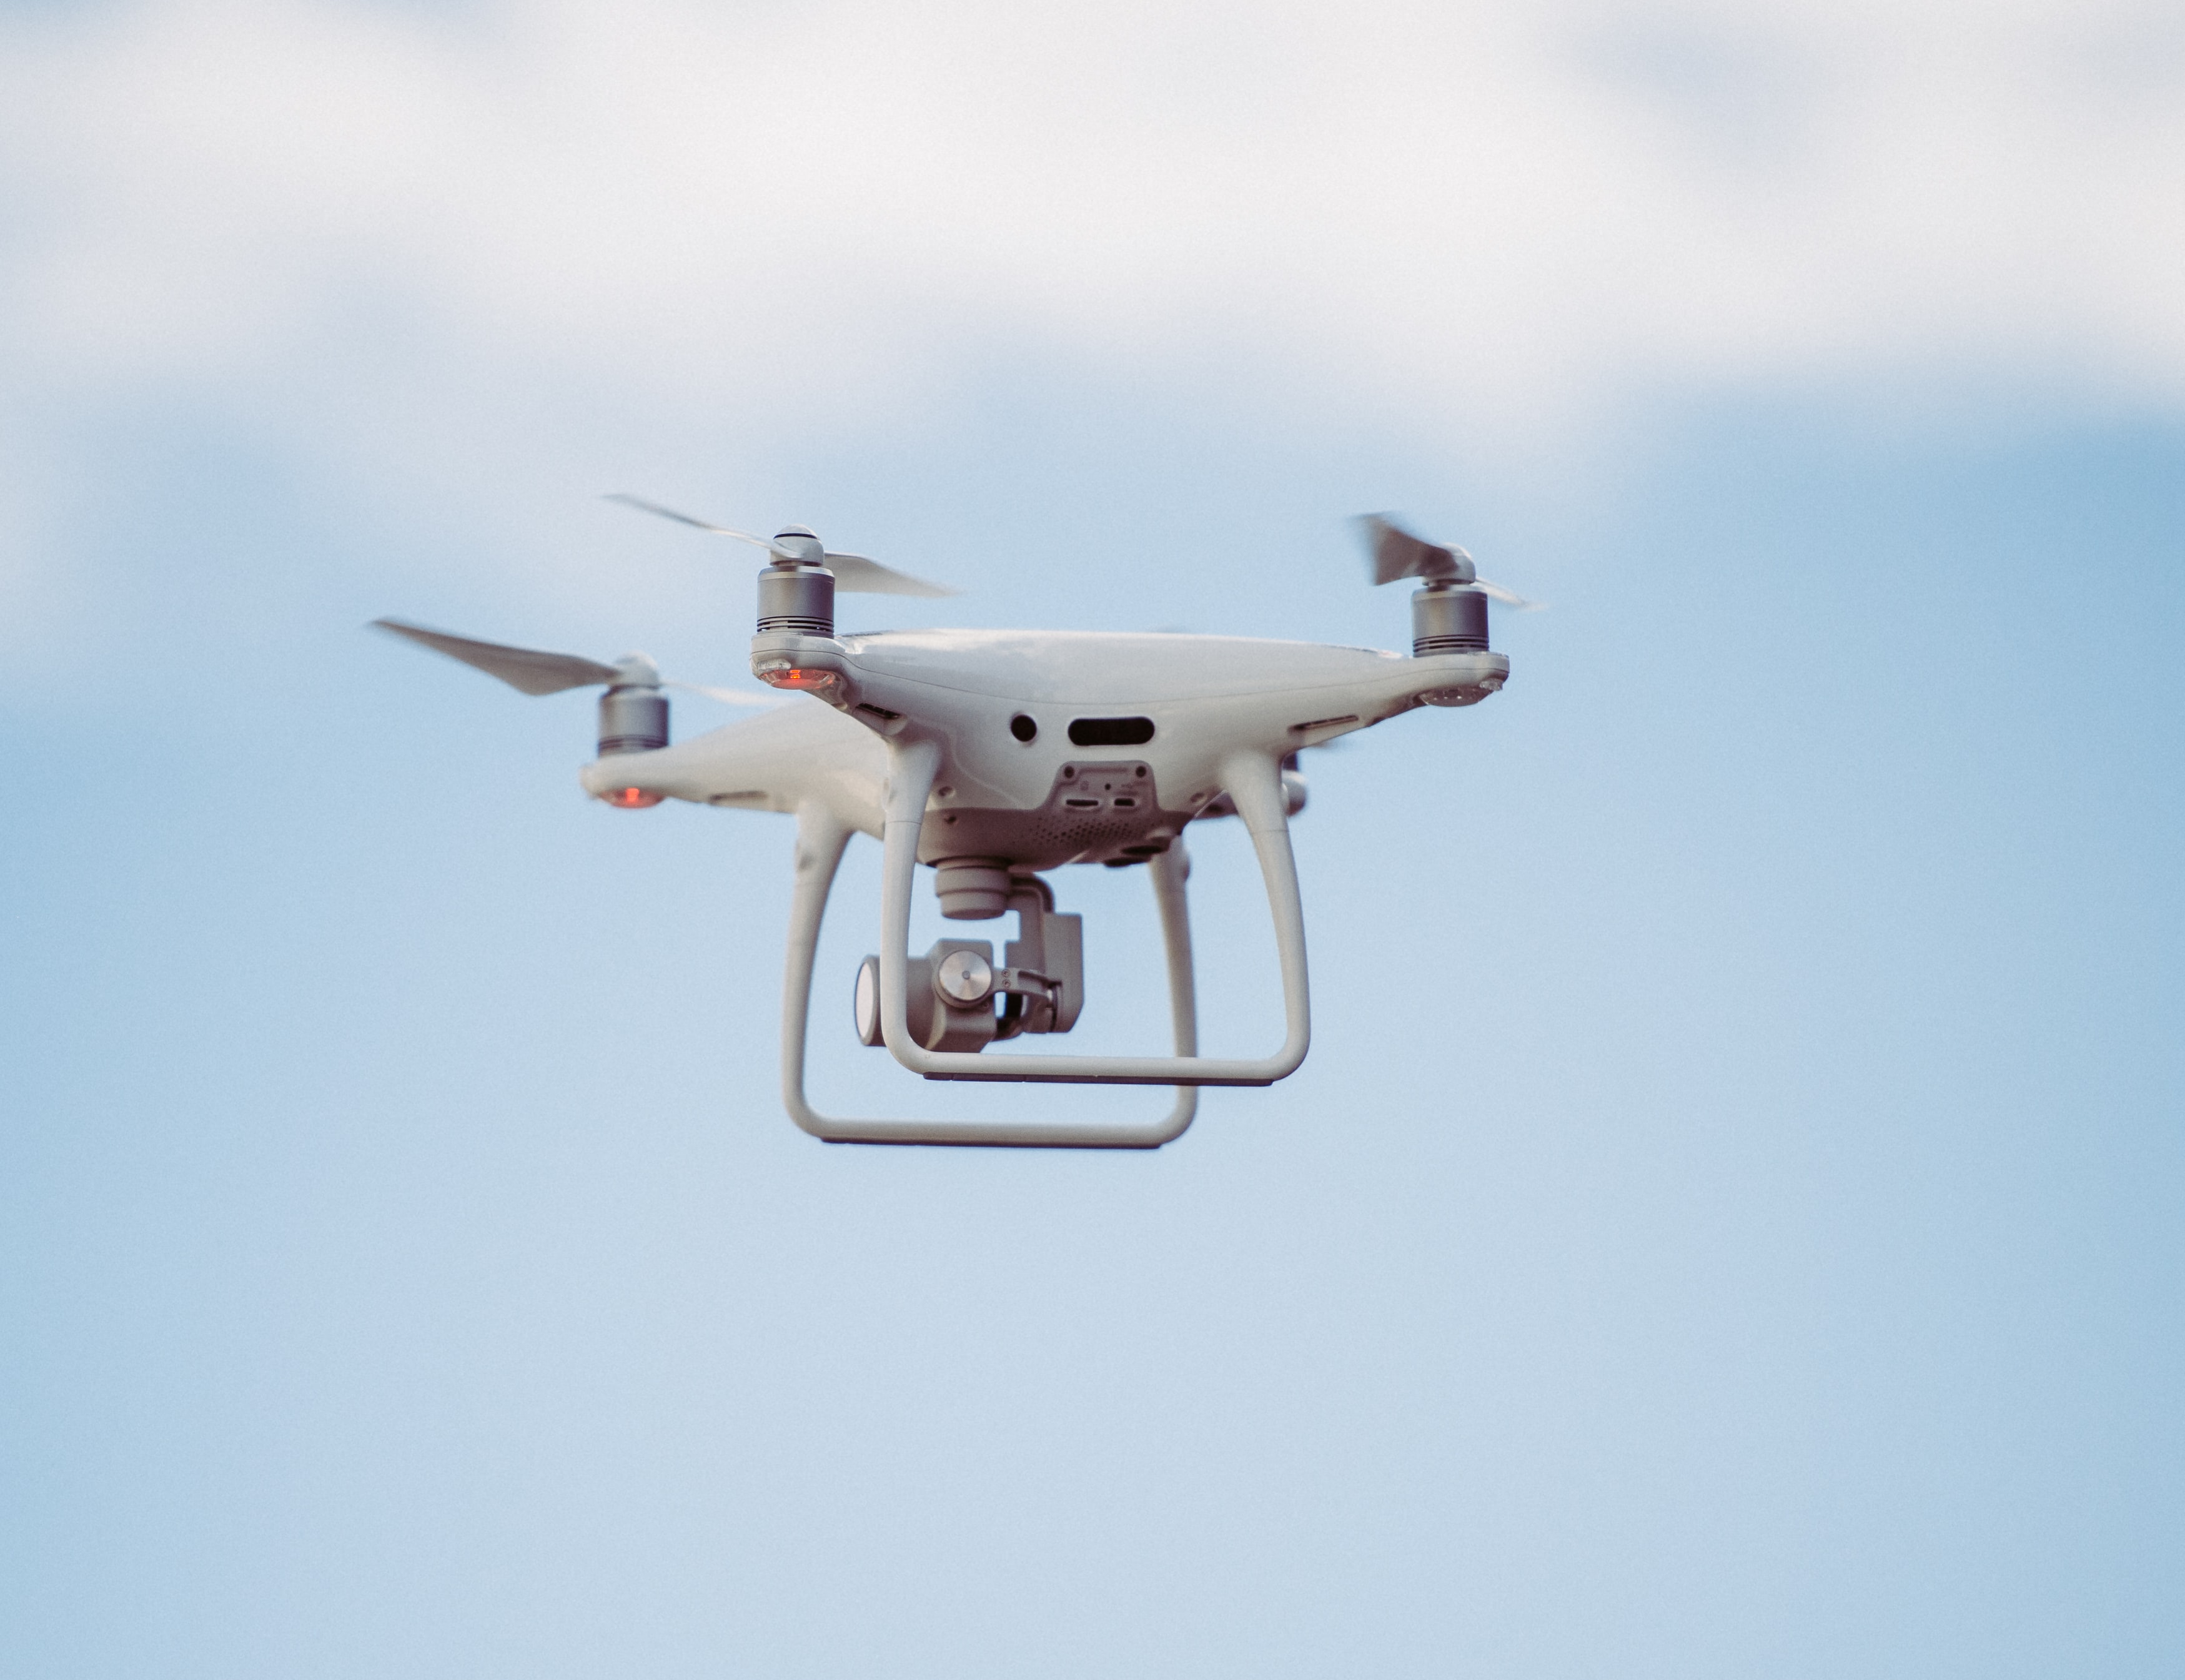 A white DJI drone in the air